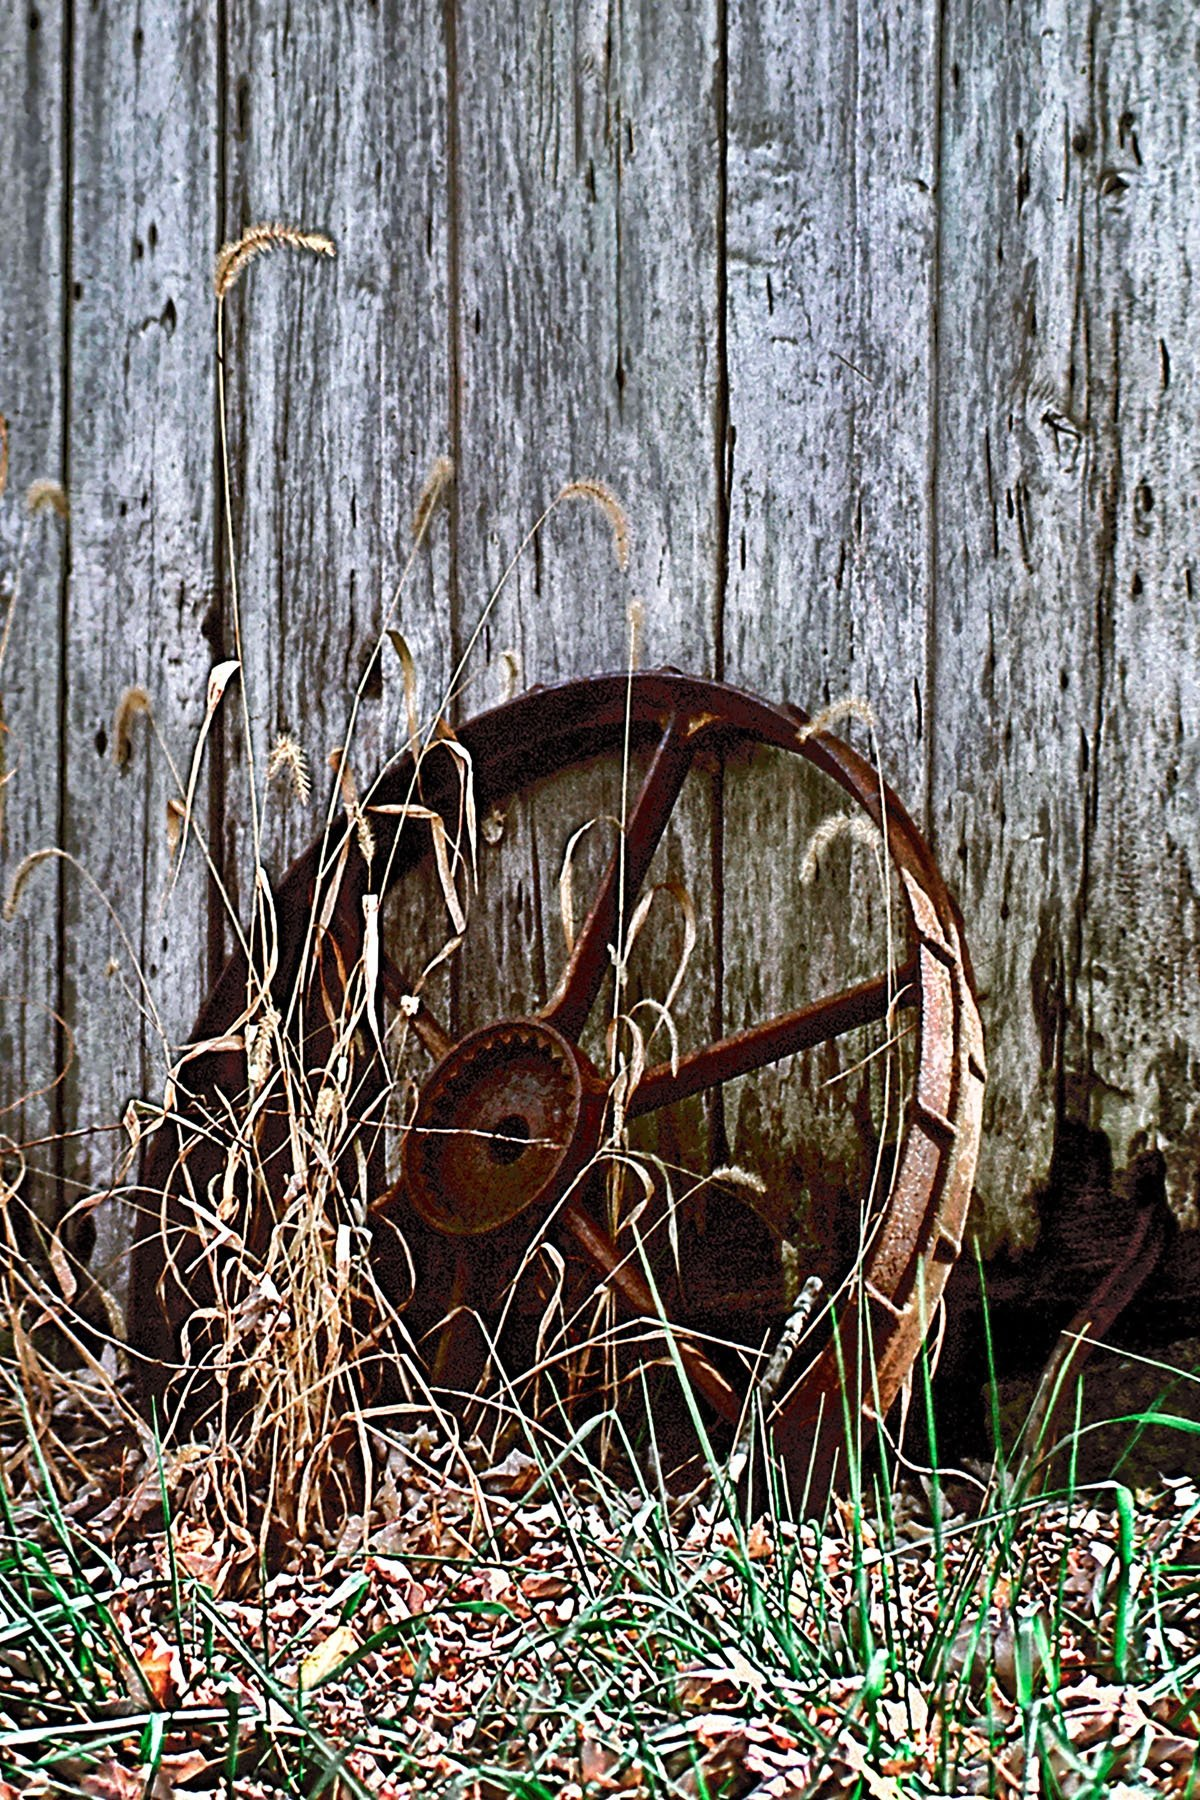 FOUND A WHEEL - I came across this old wheel laying against this old barn down in central Kentucky. I don't know... just something about it.